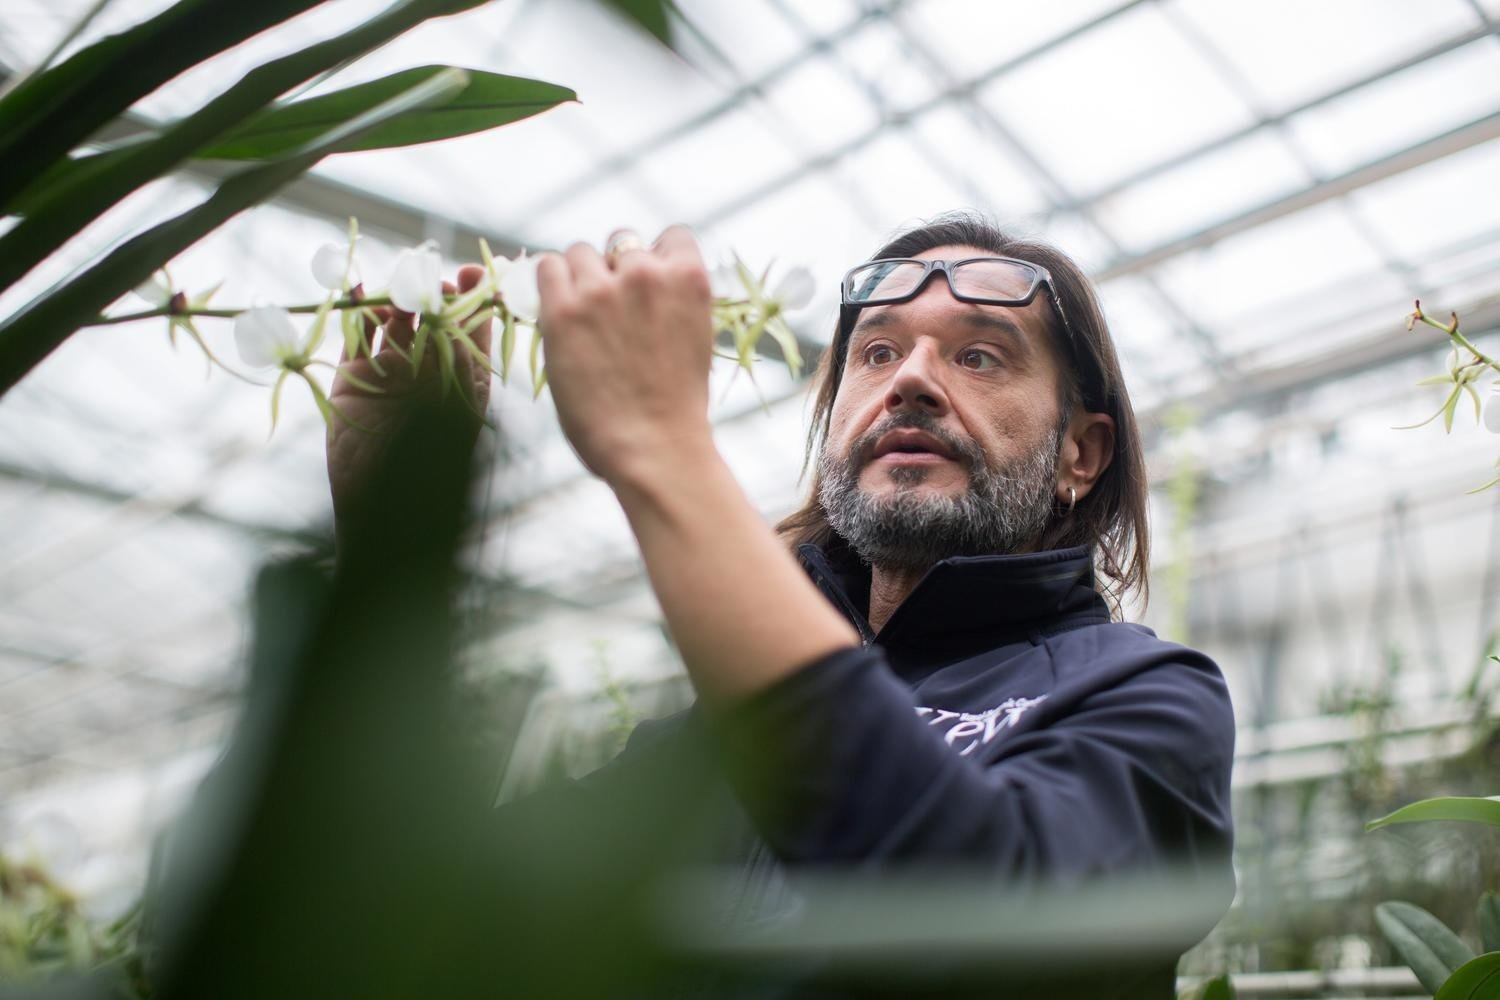 Meet Carlos Magdalena, the man on a horticultural mission